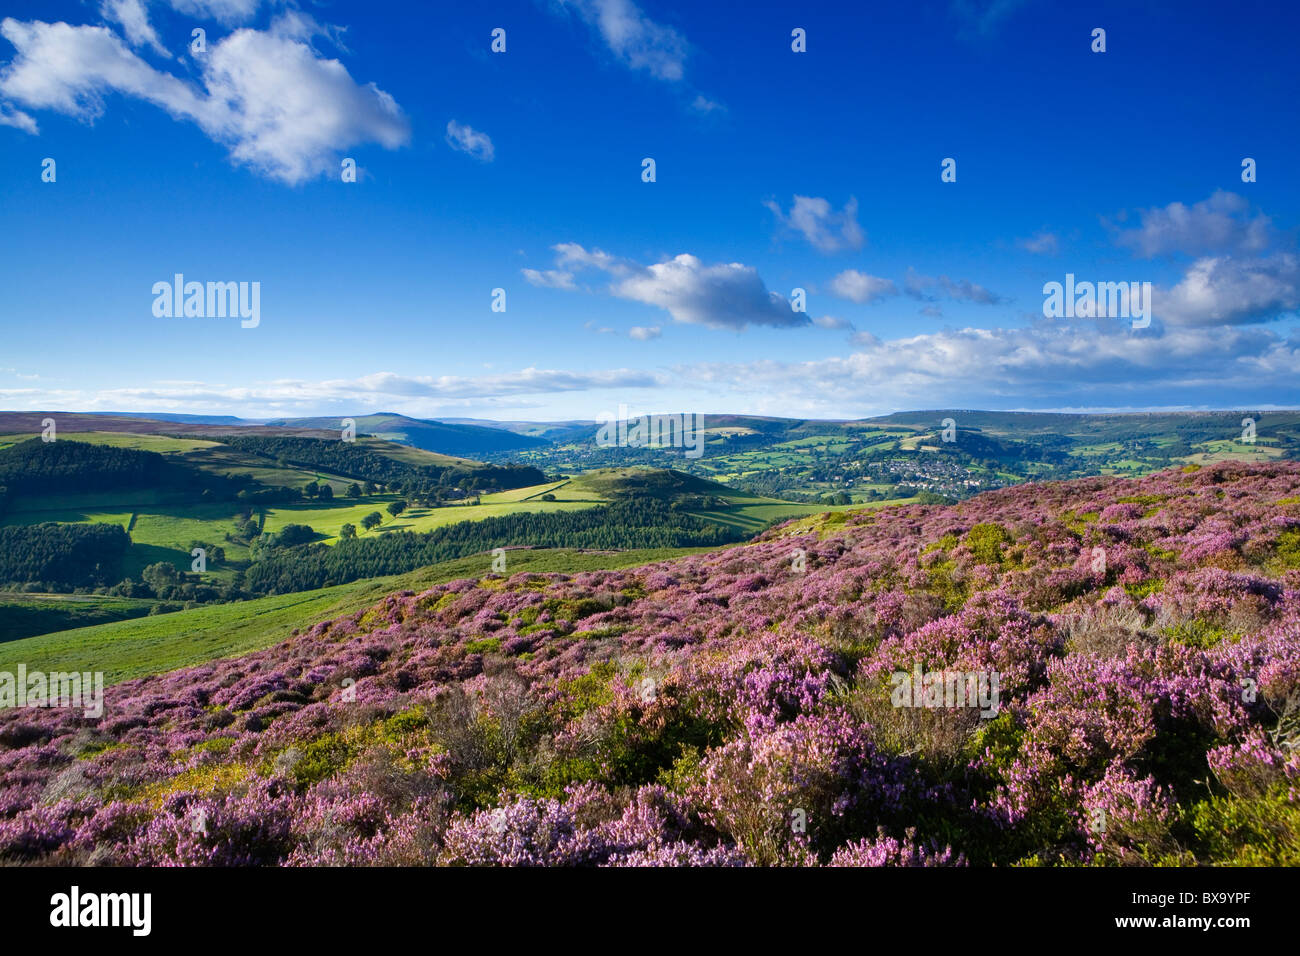 Heather on Eyam Moor with Castleton and the Hope Valley in the background - Stock Image